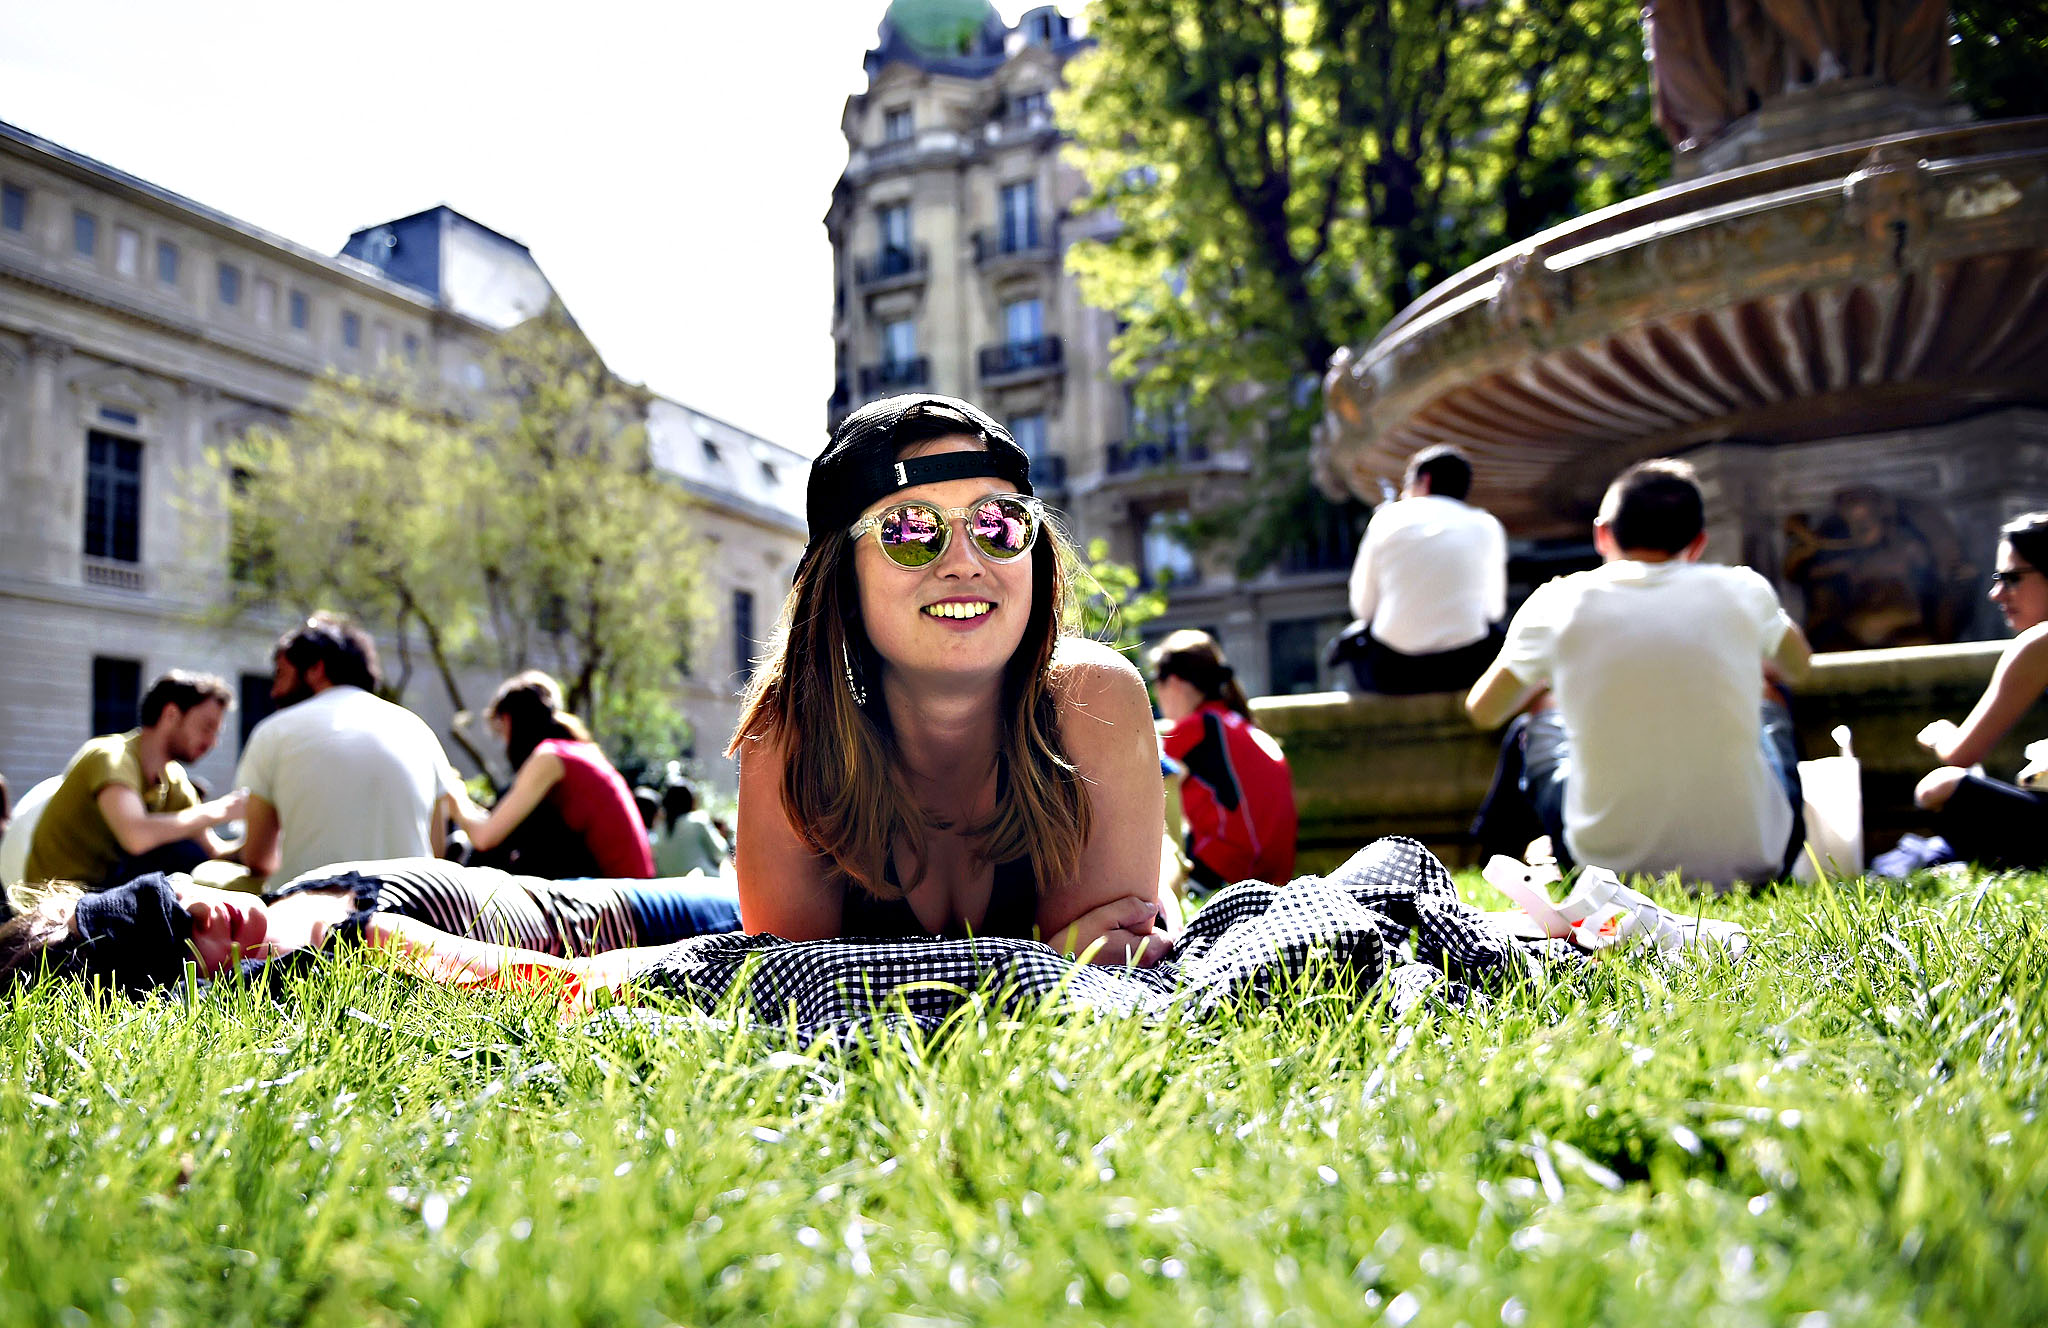 People relax in the sun in the gardens of the Palais Royal in Paris on April 15, 2015.